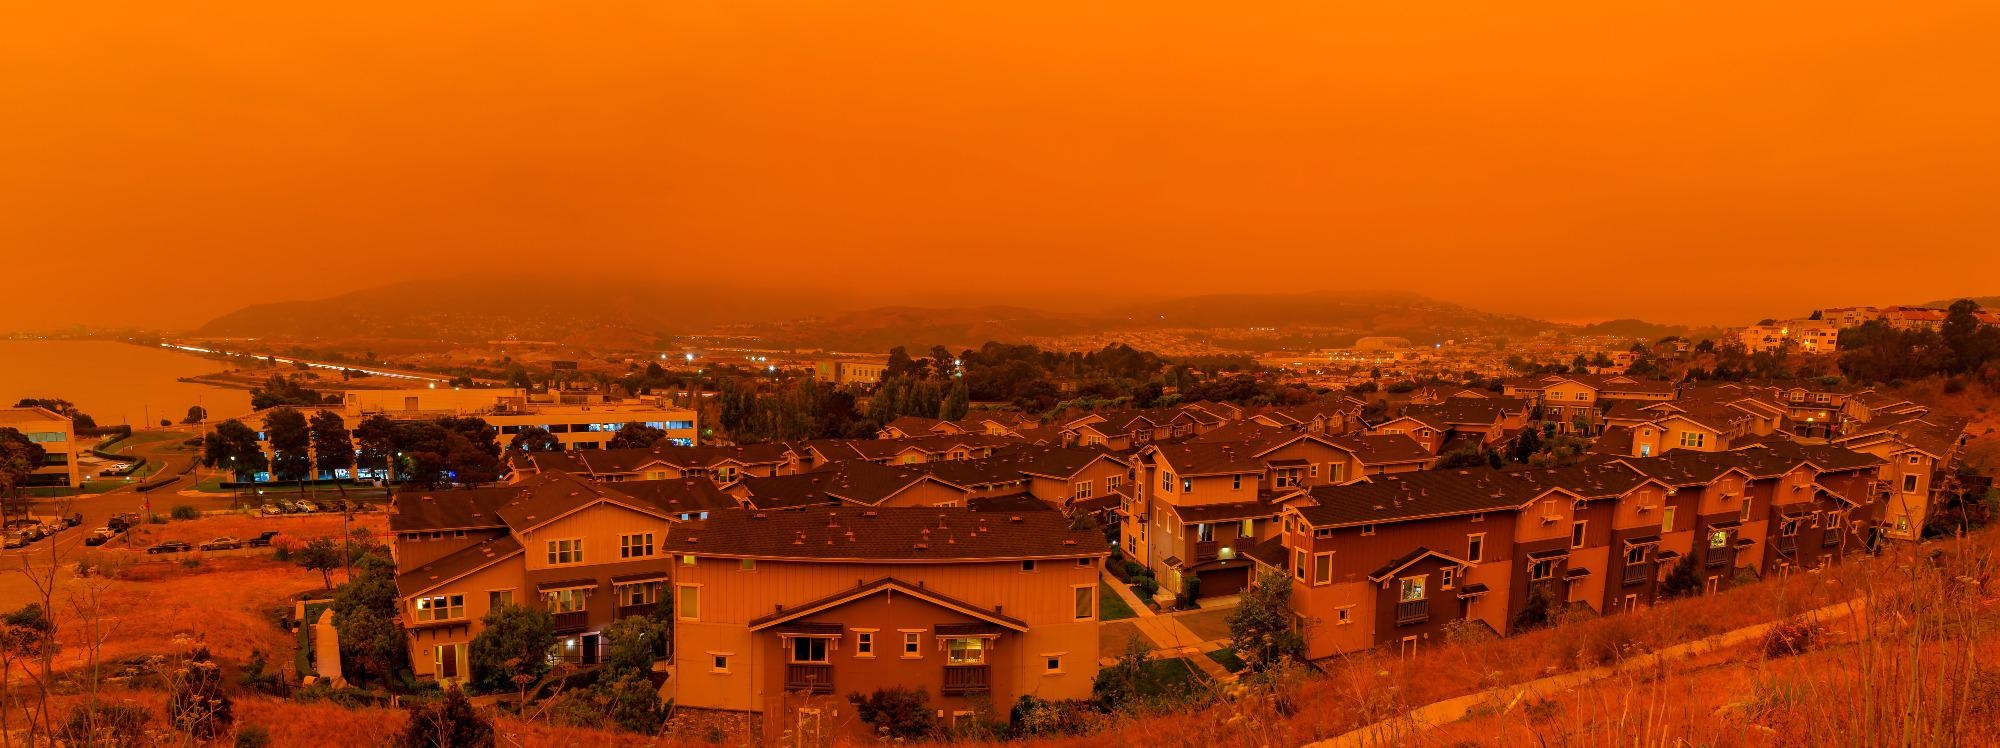 The Devastating Effect that Wildfires have on Air Quality